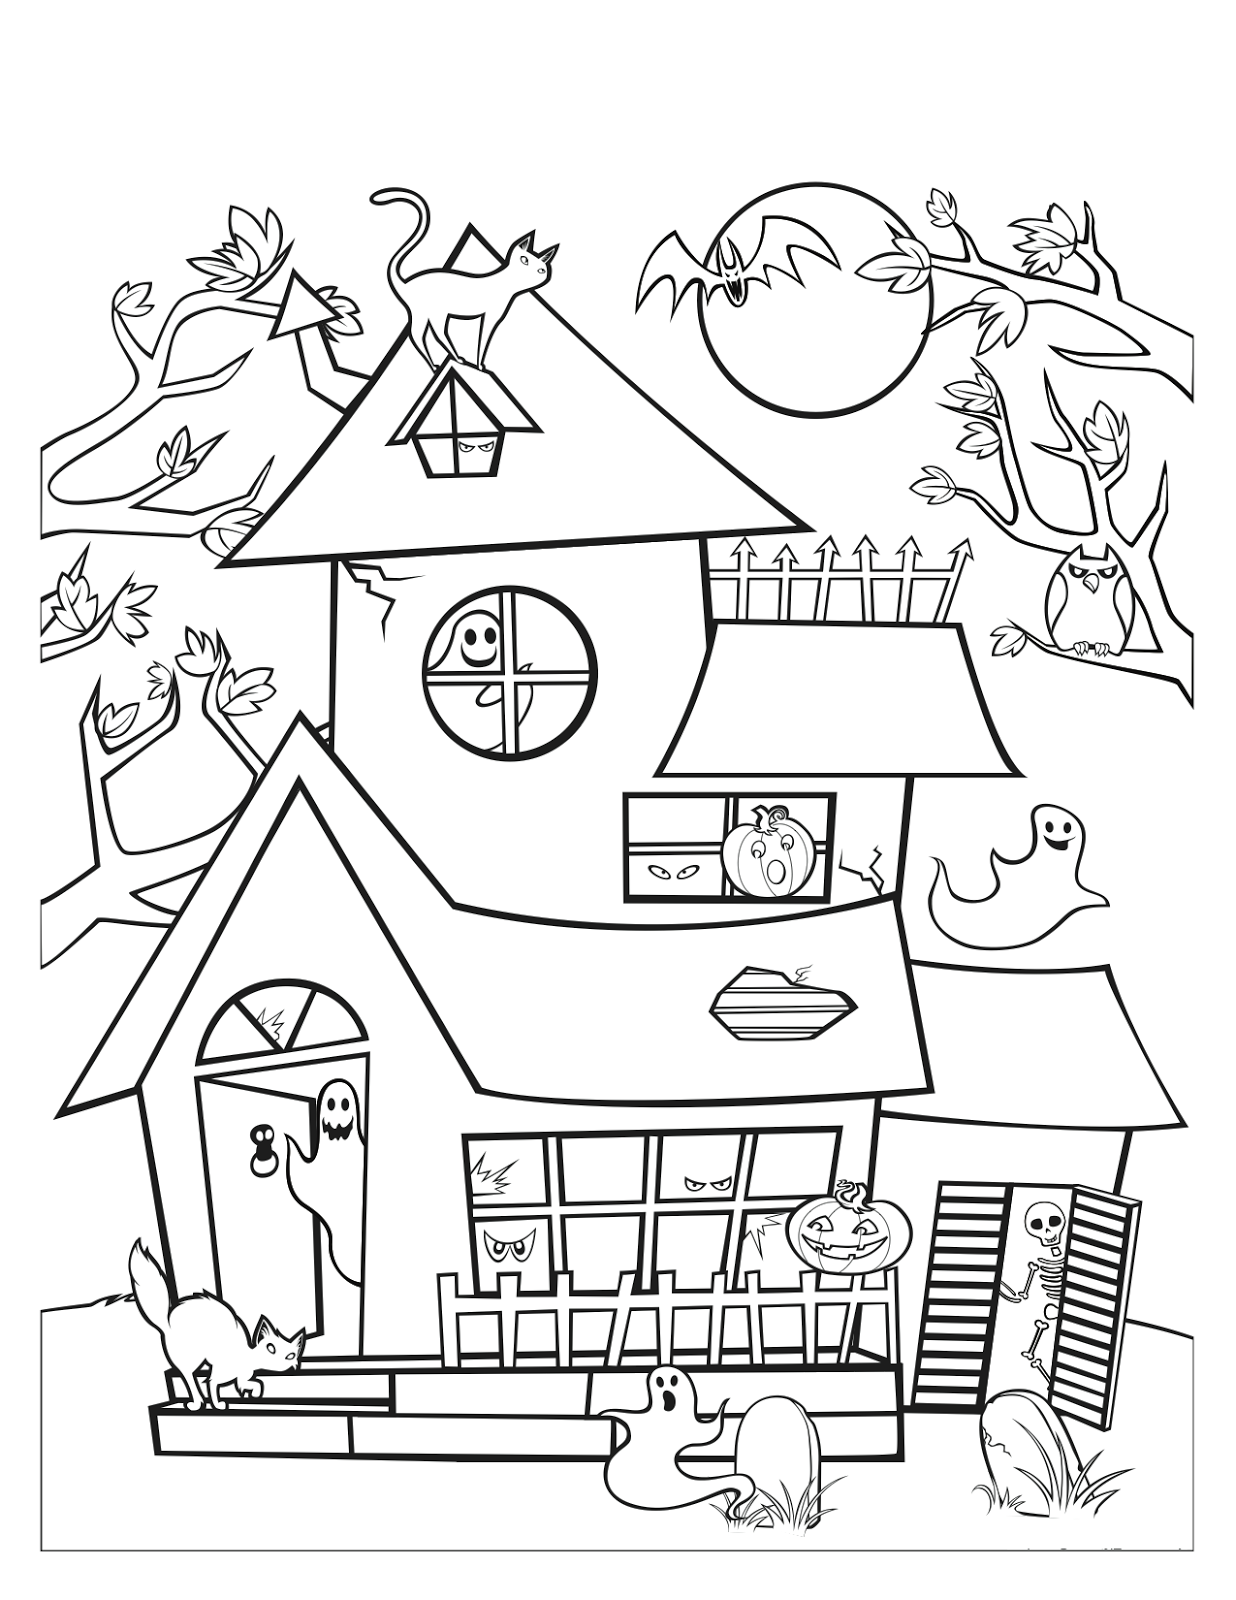 Cantinho do primeiro ciclo desenhos de halloween para pintar for Coloring pages of haunted houses